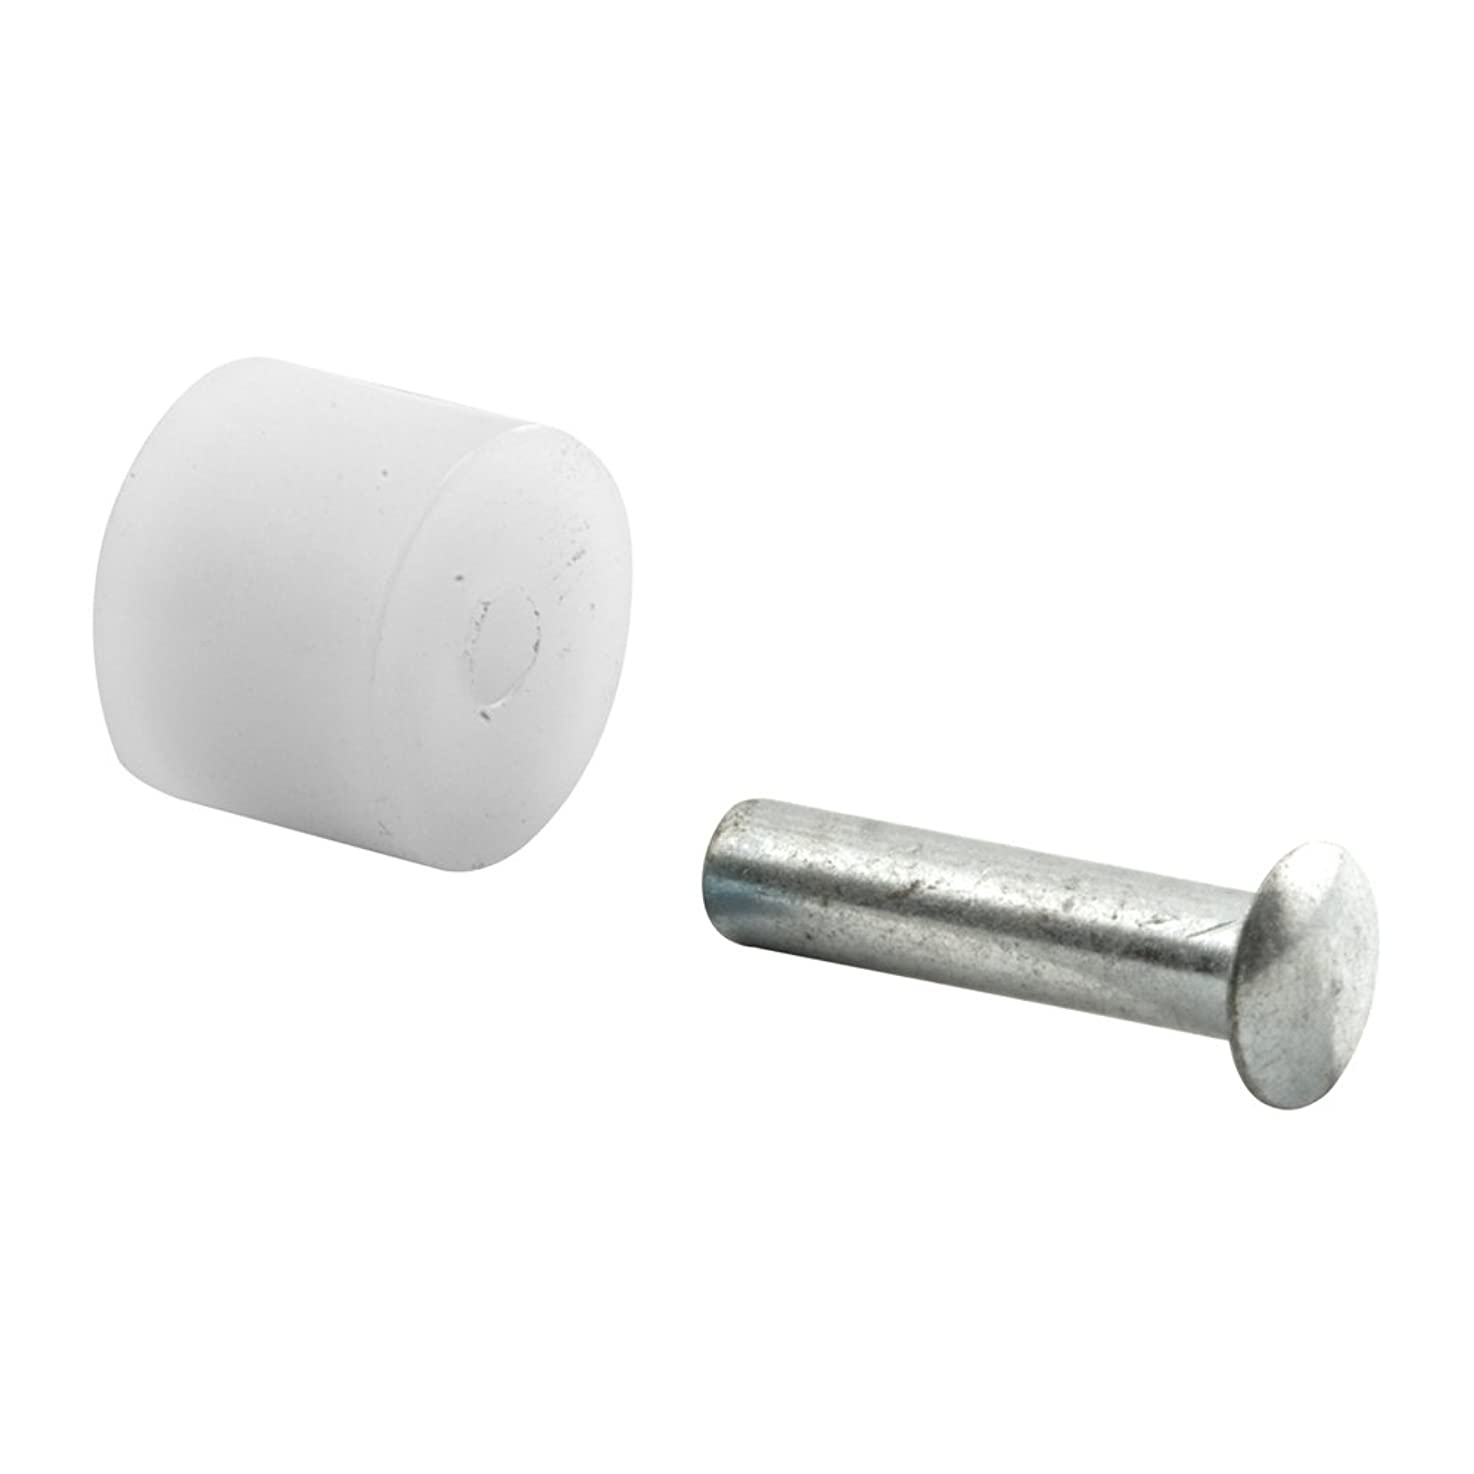 Prime-Line Products G 3017 Sliding Window Roller with Axle Pins, 3/8-Inch Flat Nylon,(Pack of 8)